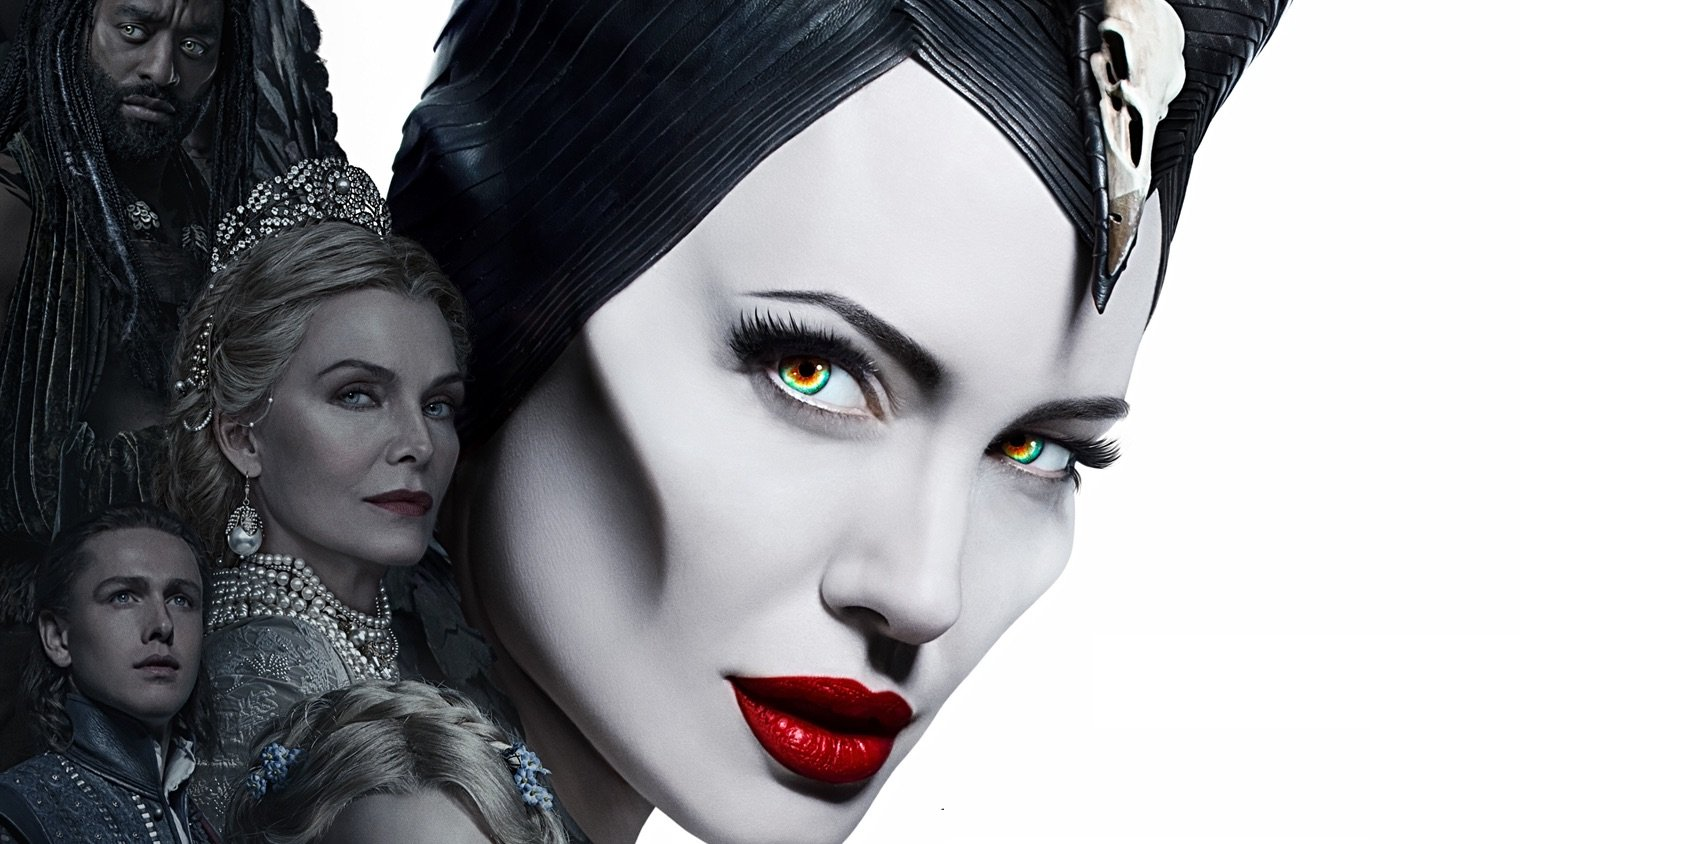 2014's Maleficent was entertaining and while it had its issues, I still appreciated it for what it was. With that being said, I was hoping for this sequel to be an improvement over the first film. Luckily, Maleficent: Mistress of Evil is better than its predecessor in several different ways and proves to be worthwhile. Some sequels are just clear cash grabs, whereas others build upon the story and have something of quality to bring to the table. This film is the latter and that is the only type of sequel that should be made.